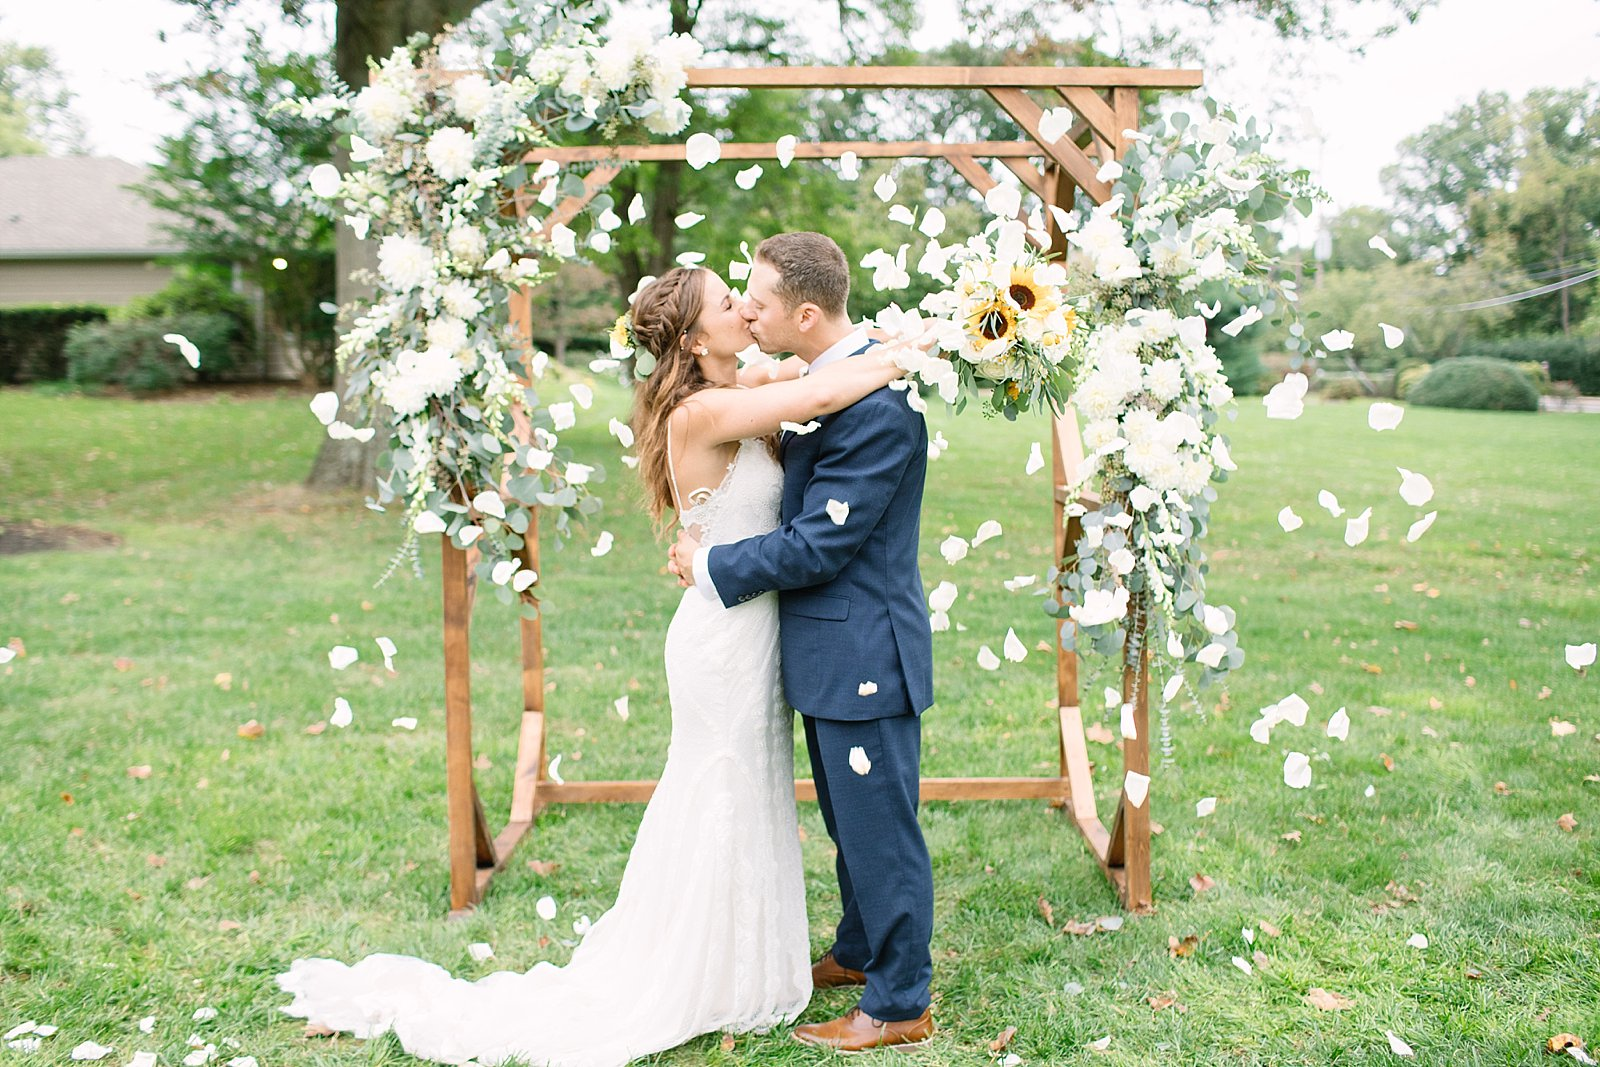 backyard Wedding day photographed by New Jersey and destination wedding photographer Ashley Mac Photographs